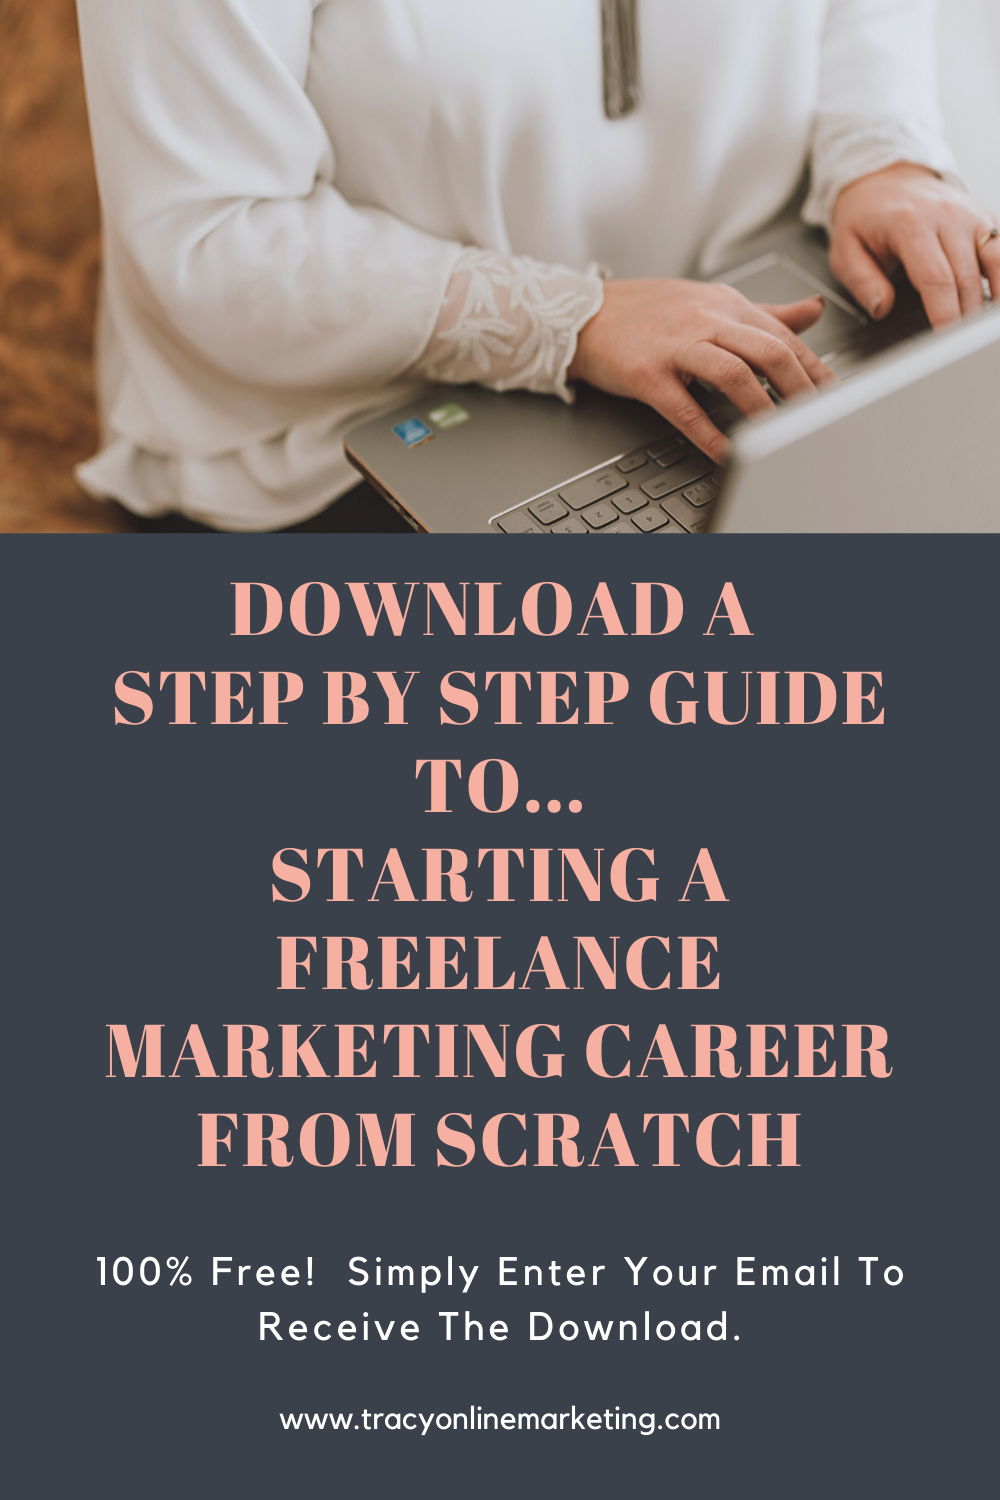 Download a Step by Step Guide To Starting a Freelance Marketing Career From Scratch.